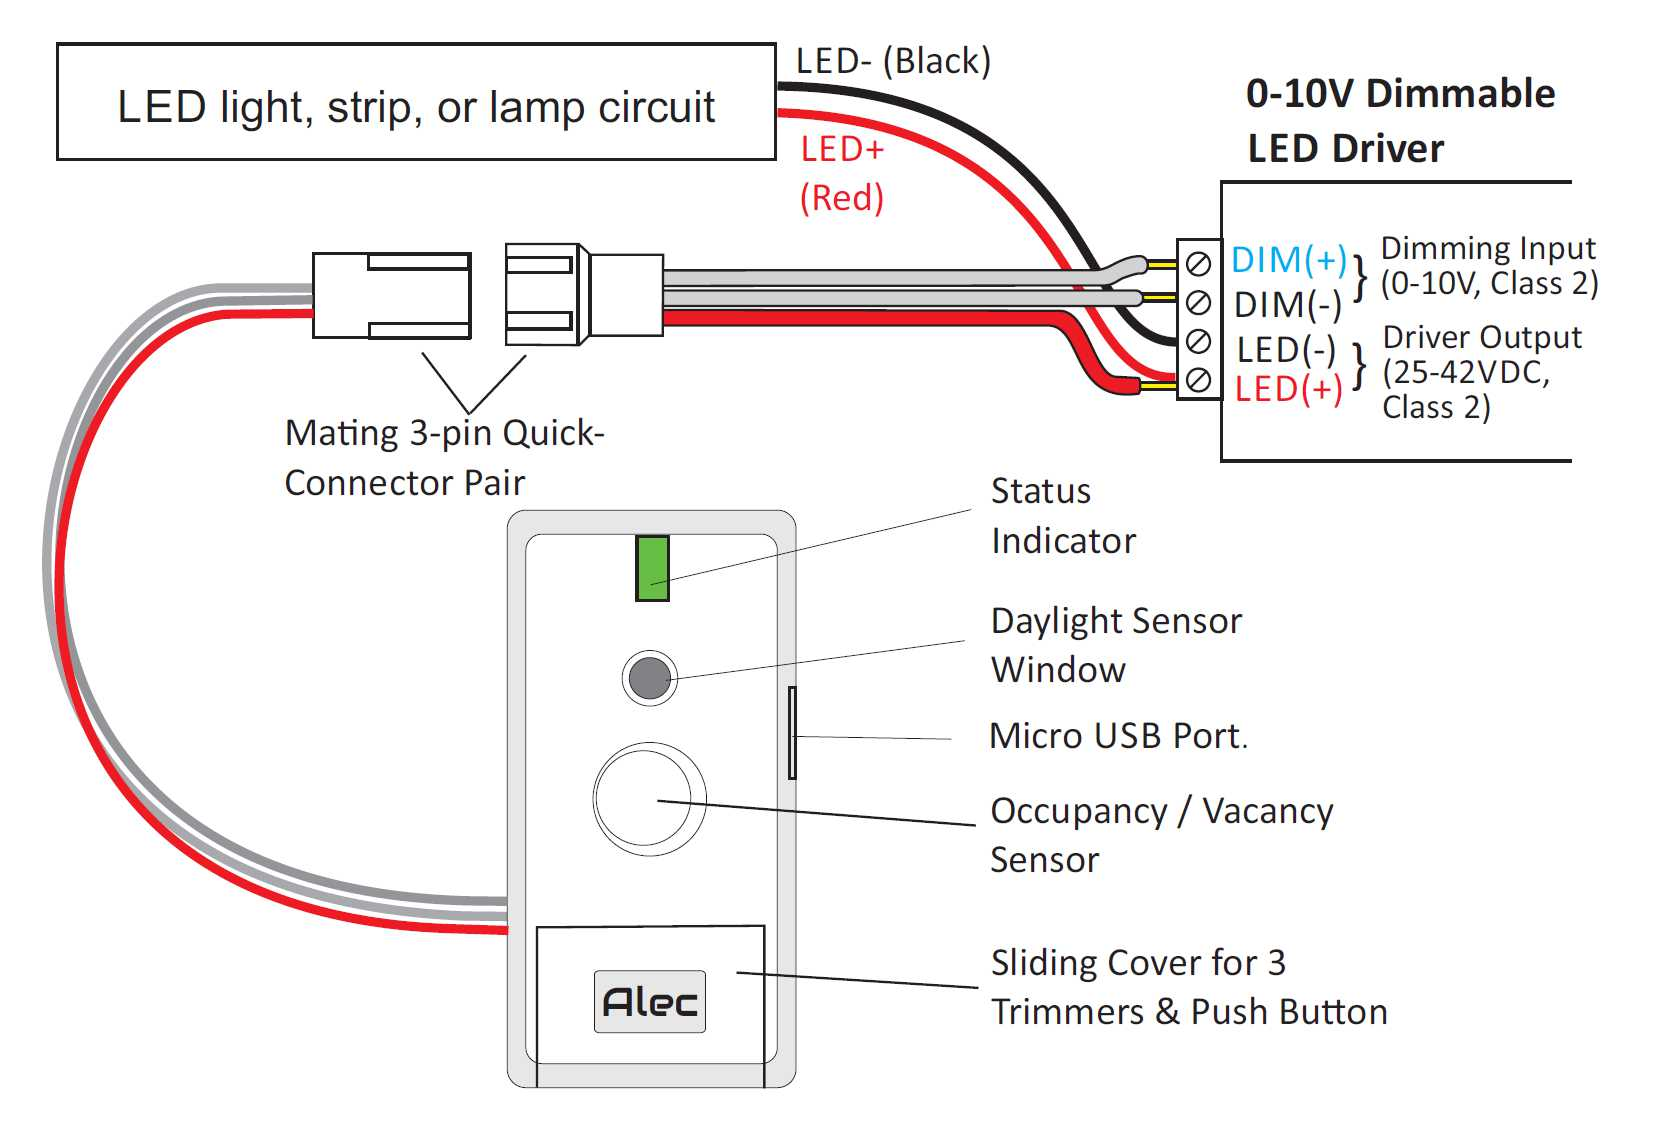 hight resolution of just connect a smartphone to the controller anytime nothing but extraordinary flexibility in this incredible low cost smart led conversion kit